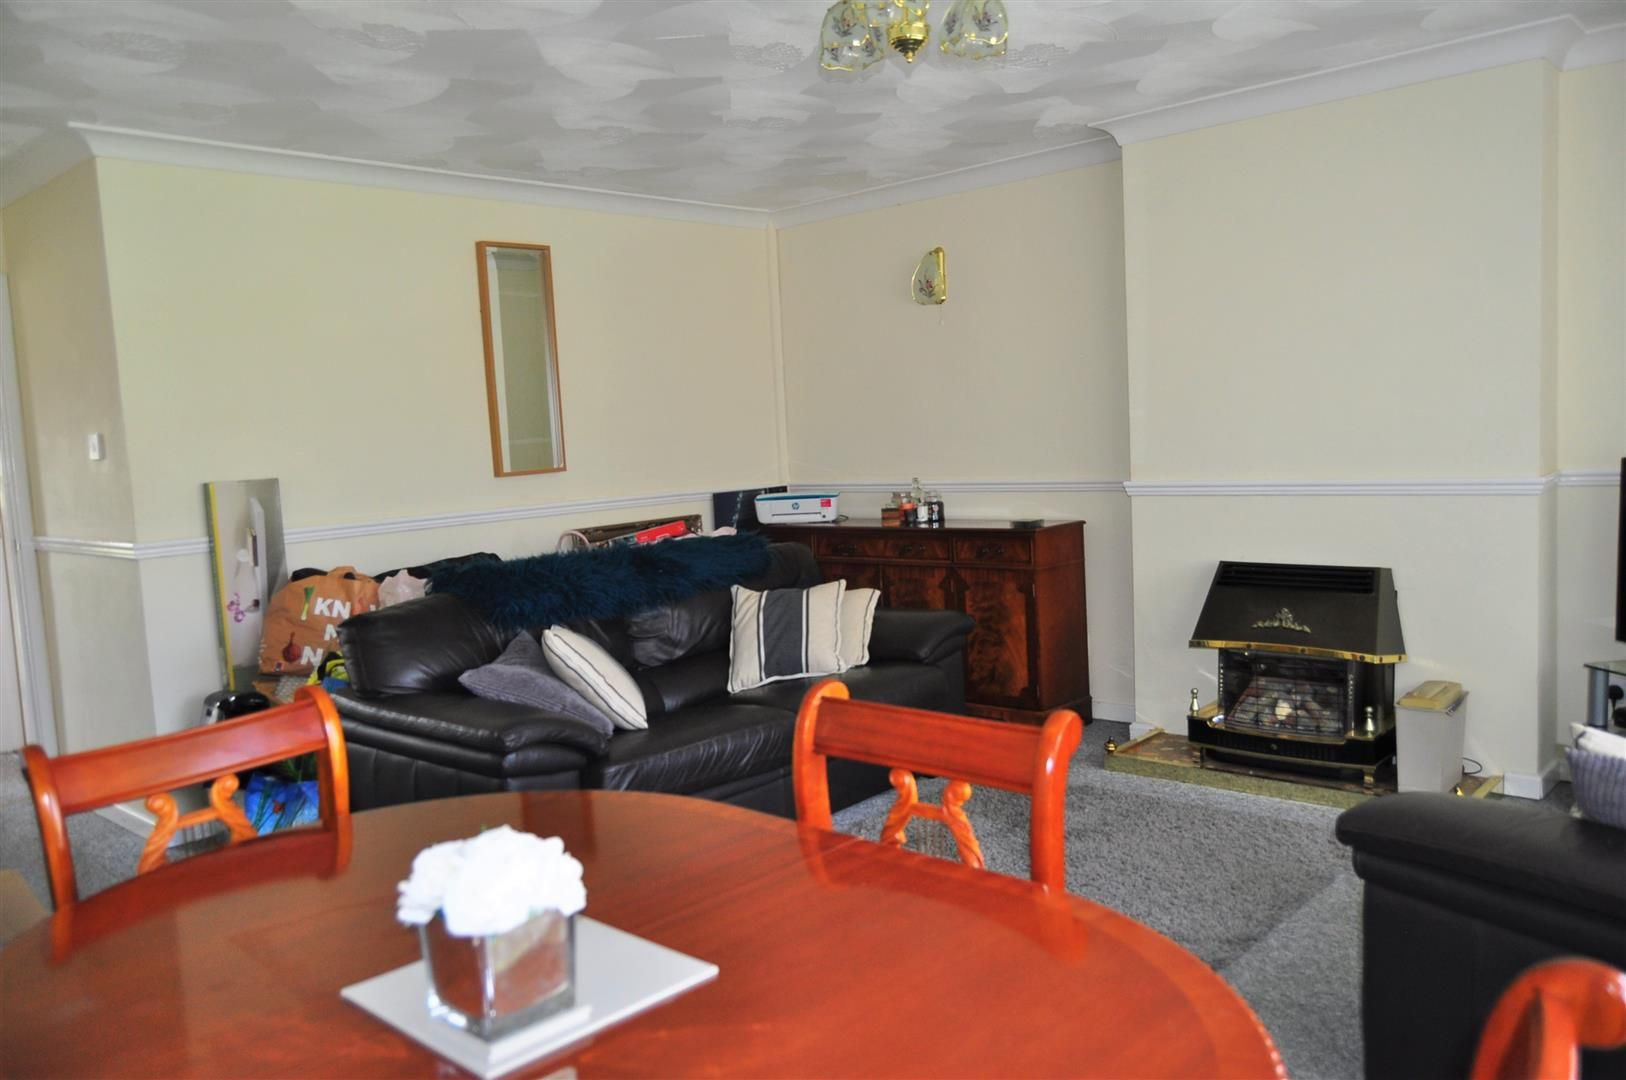 3 bed end-of-terrace for sale in Quinton  - Property Image 3